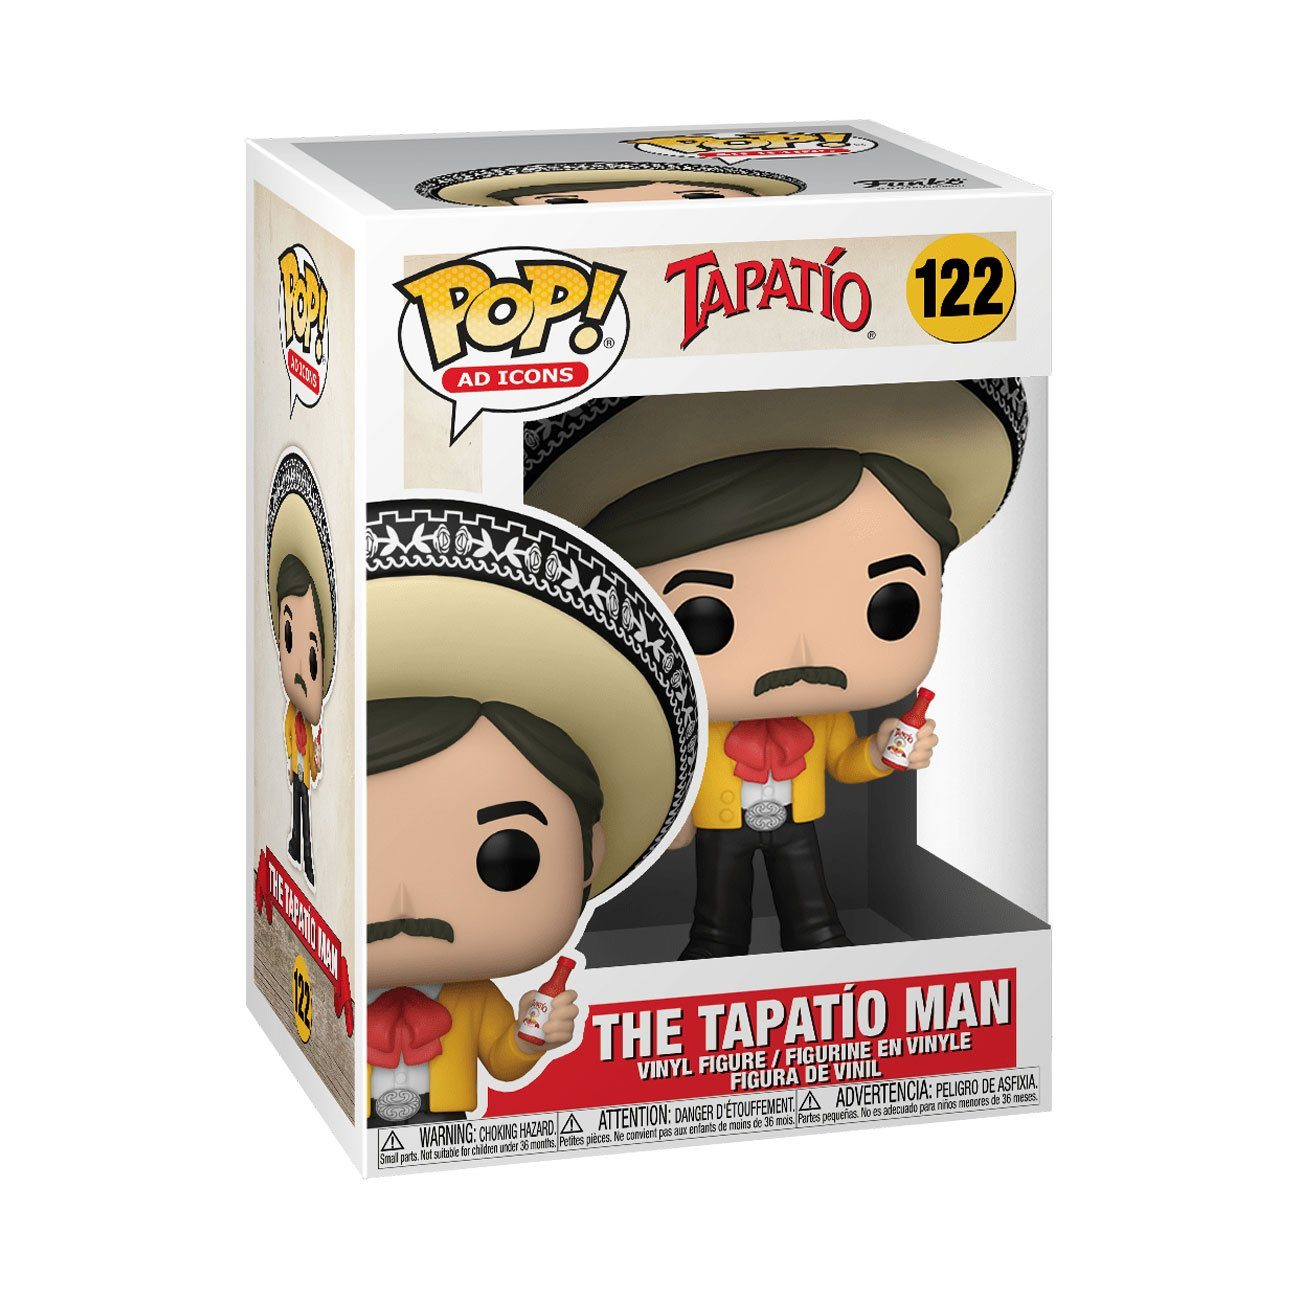 Tapatio Man #122 Tapatio Funko POP! Ad Icons [PRE-ORDER EXPECTED SUMMER 2021*] POP! Funko